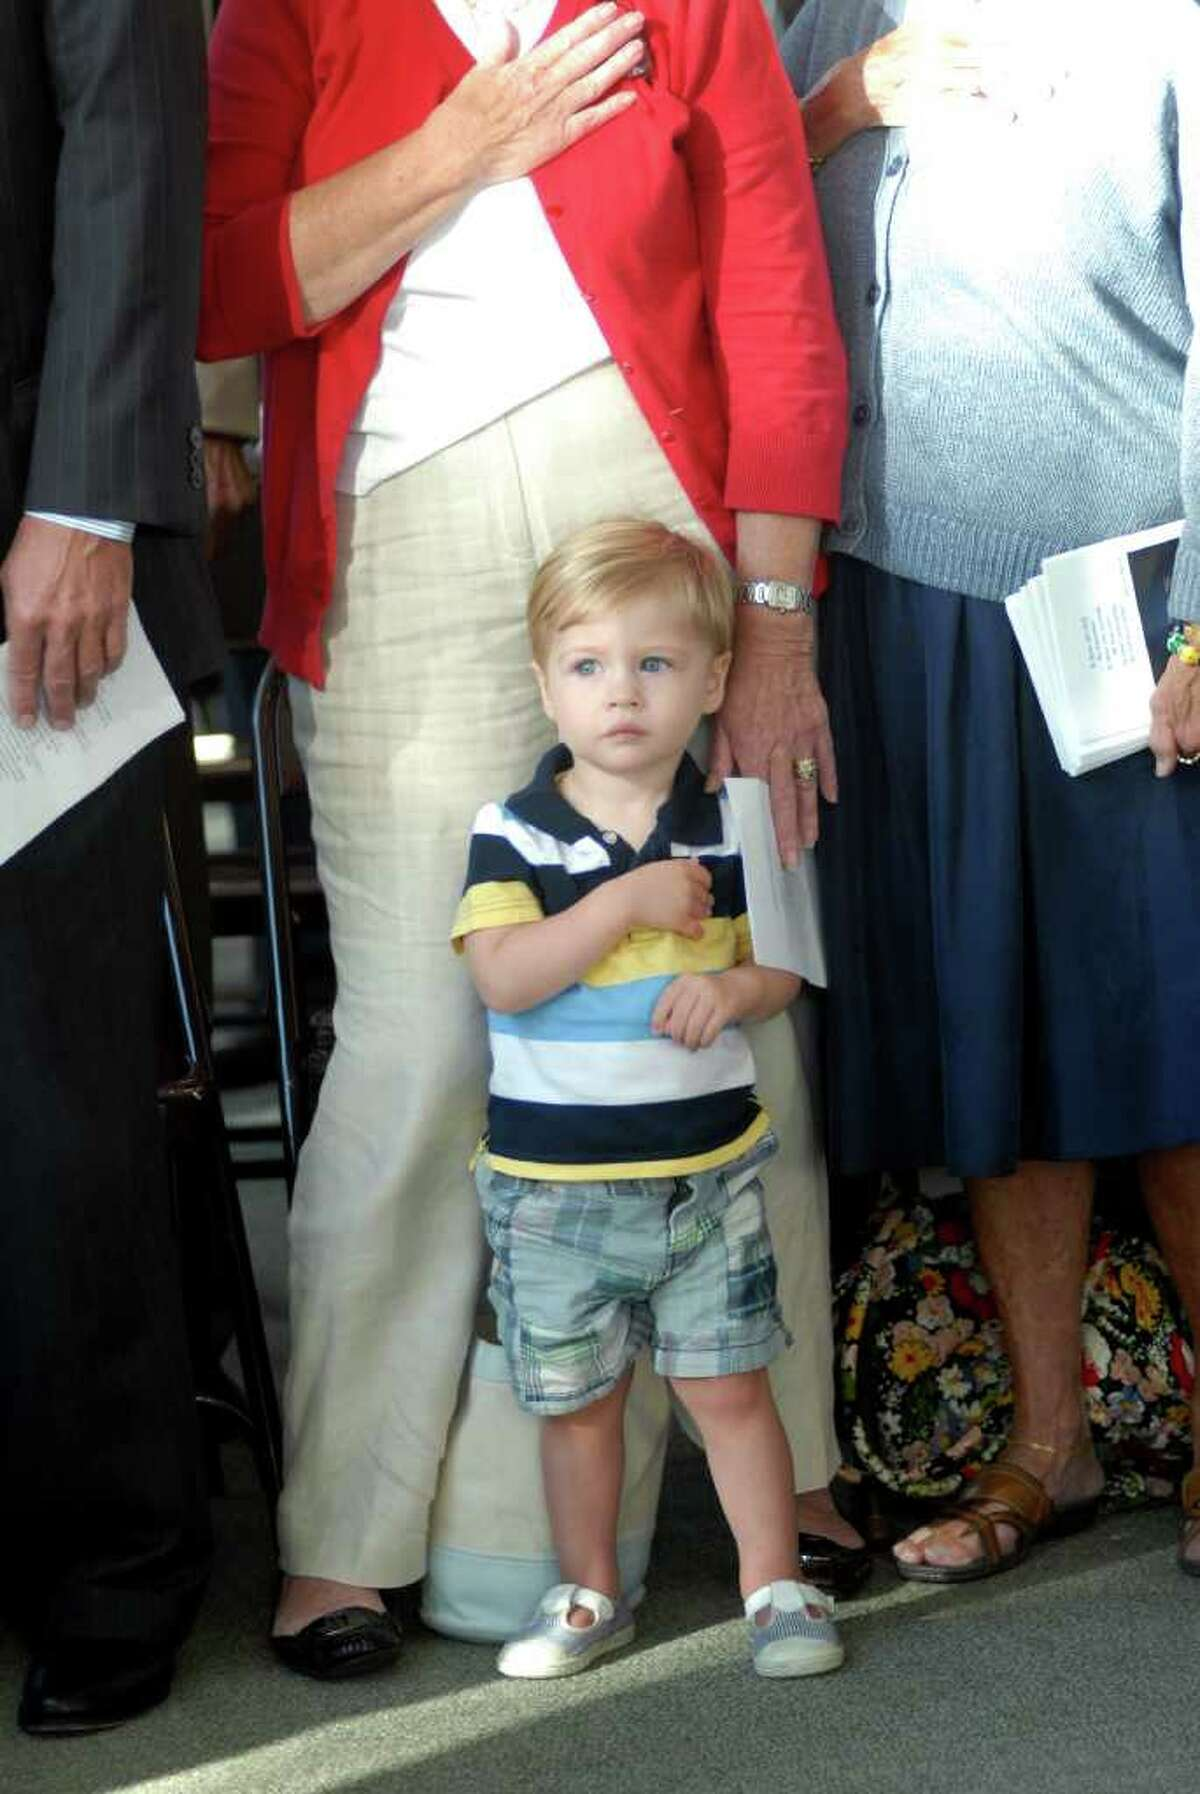 One year old Dean Filippone, grandson of Rep Livvy Floren (149) holds his hand over his heart during the Pledge of Allegiance at 9/11 ceremony at the Government Center in Stamford, Conn. on Friday September 9, 2011 to dedicate a new memorial created from a piece of steel from the Twin Towers.